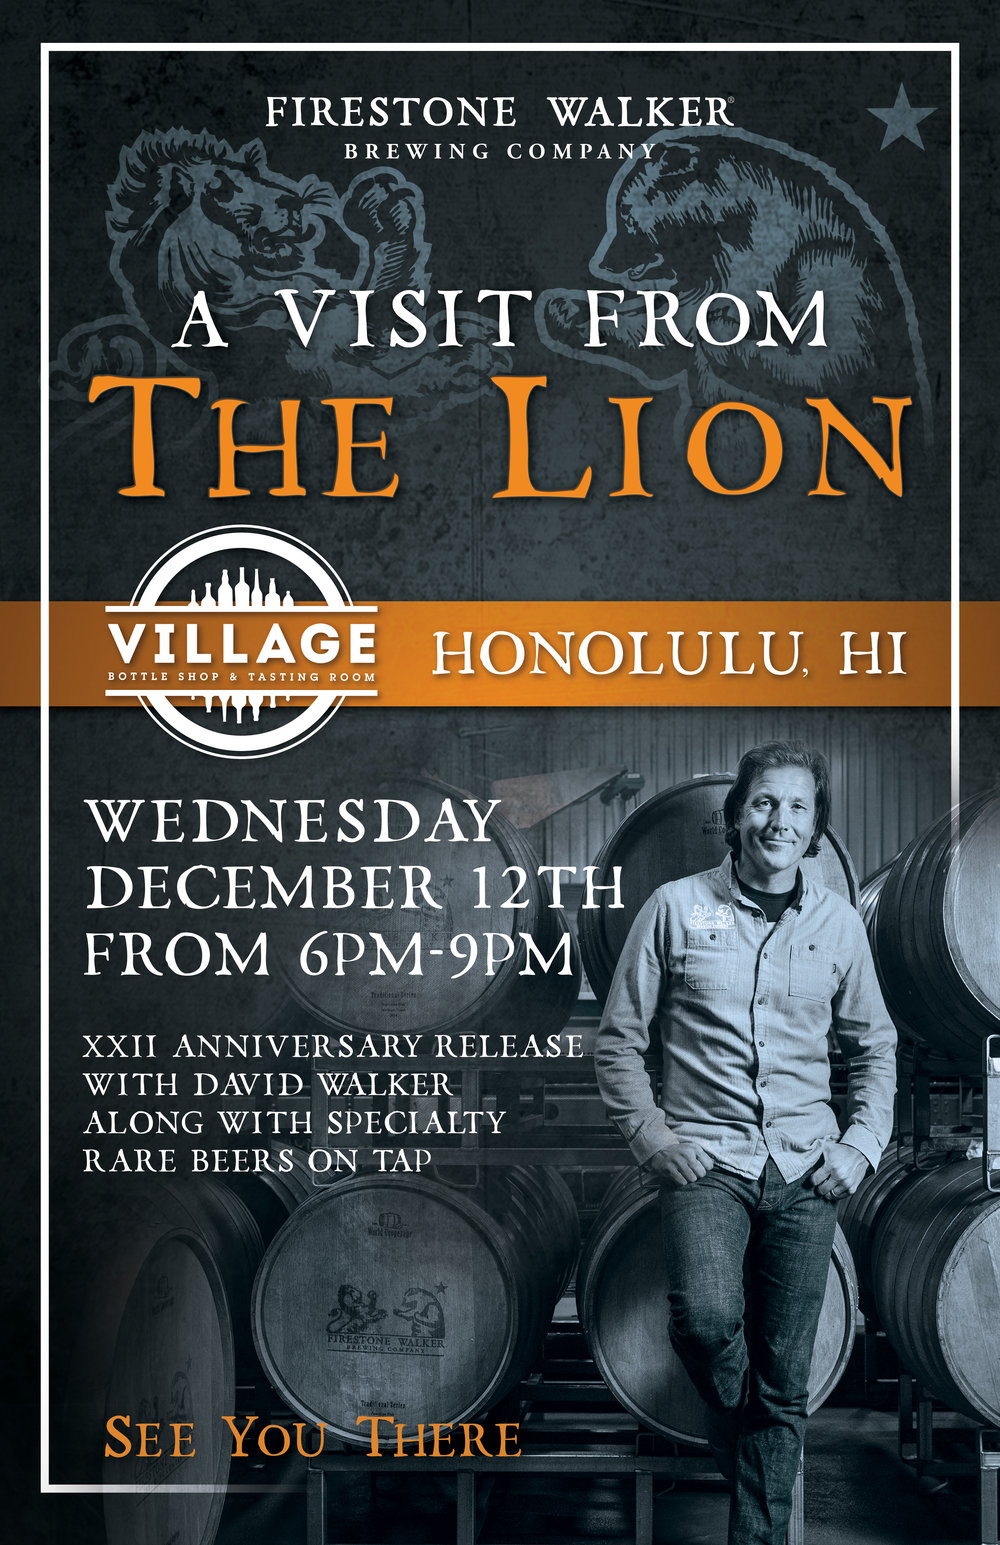 XXII Anniversary Release Party! - Join Firestone Walker Brewing Co. 's David Walker at Village as we release the XXII Anniversary Ale. Don't miss the chance to meet a legend in the brewing industry and grab a bottle of this amazing and special blended barrel aged beer (and possibly get David to autograph the box!).On top of having bottles of XXII we will also have it on draft along with the four components that make up this blended beer! Stickee Monkee (Central Coast quad, 44%), Parabola (Russian imperial oatmeal stout, 22%), Bravo (imperial brown ale, 22%) and Helldorado (blonde barleywine, 12%) will all be on draft so you can taste the individual beers that got blended into making XXII.See you there!